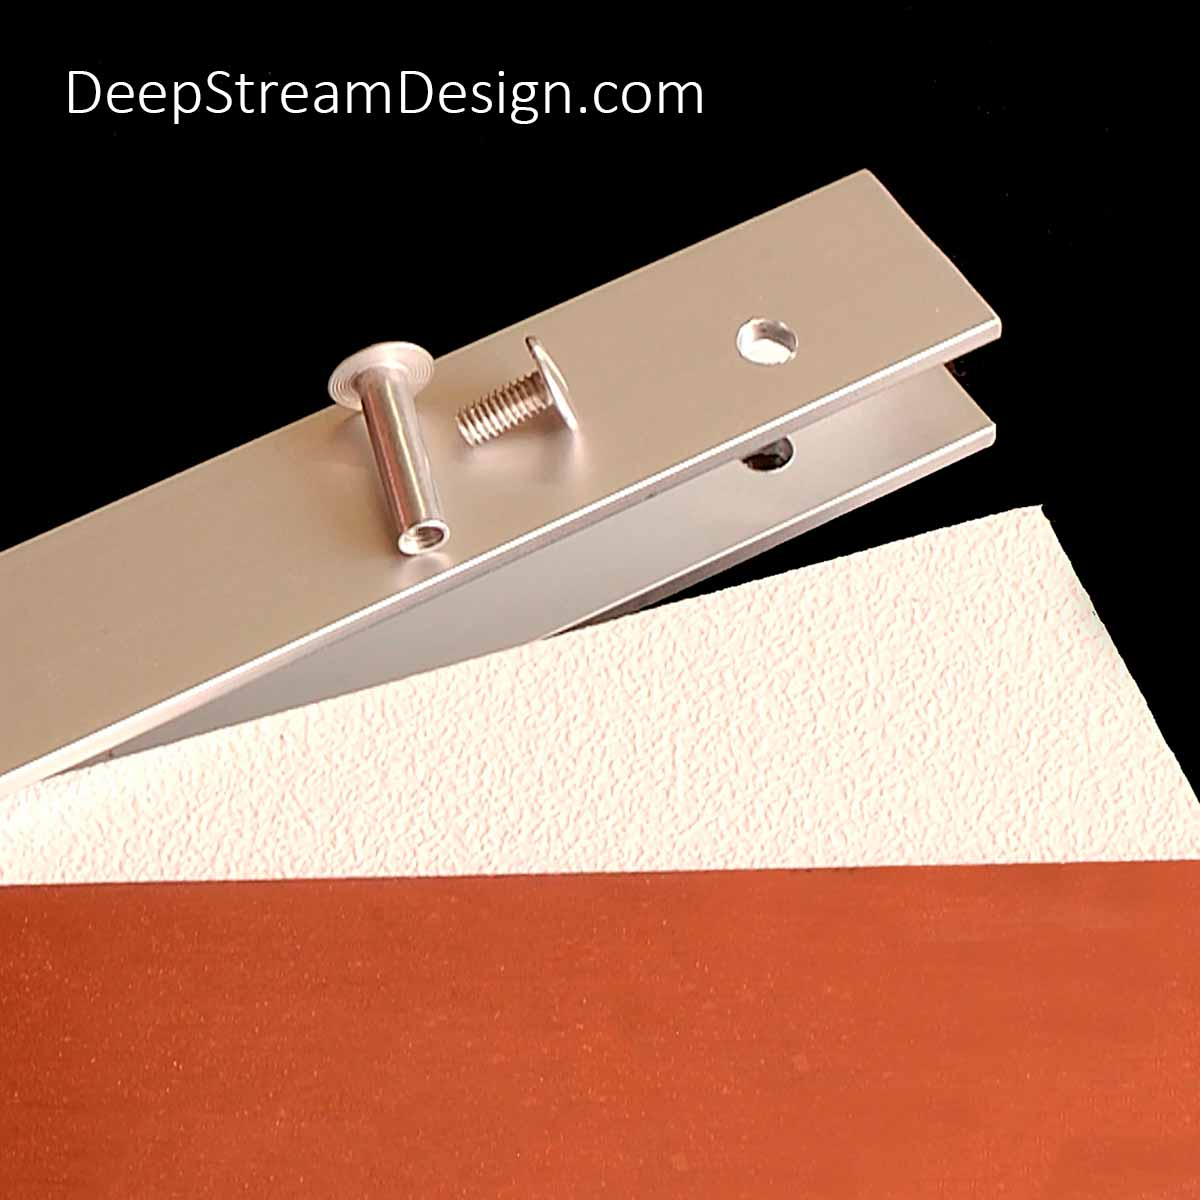 A Studio photo of a proprietary Audubon Aluminum Frame System U-channel creating a composite panel using a thin sheet of expensive copper with an inexpensive white panel in the background.